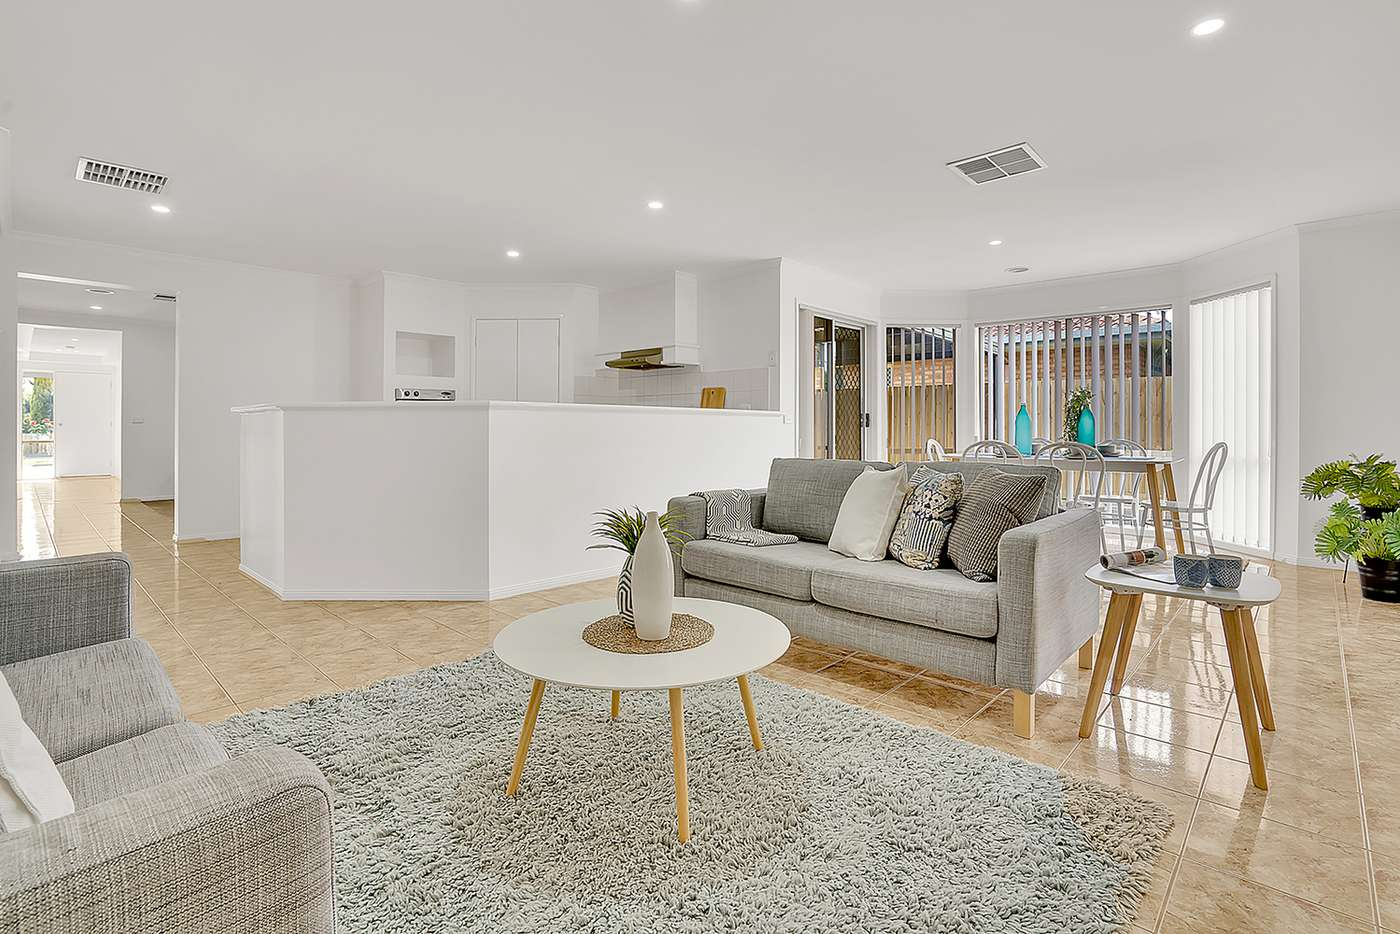 Fifth view of Homely house listing, 9 Belsay Place, Craigieburn VIC 3064